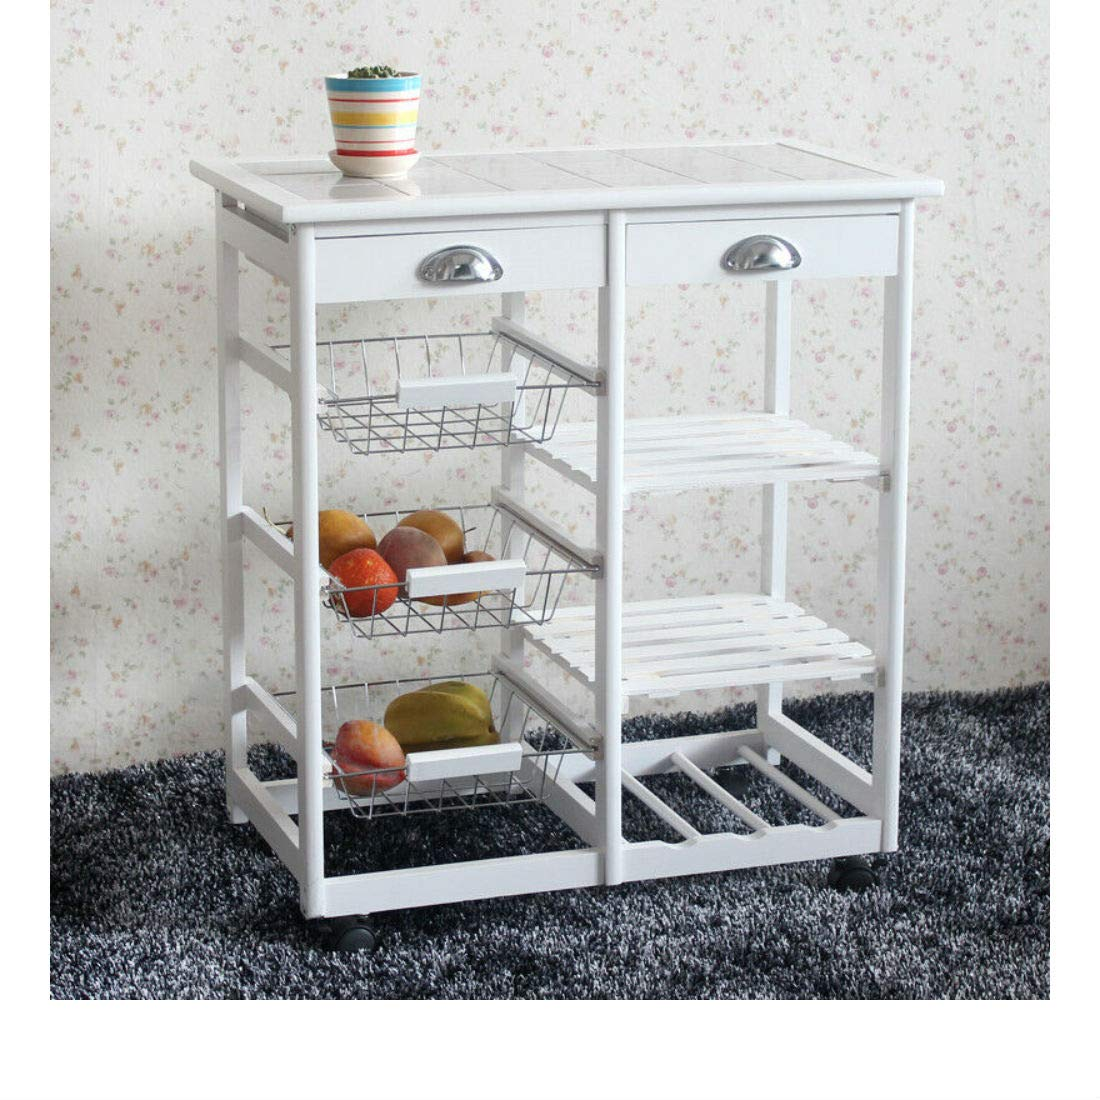 Rolling Wood Kitchen Island Trolley Cart Storage Tile Top Drawers Stand Durable (White)